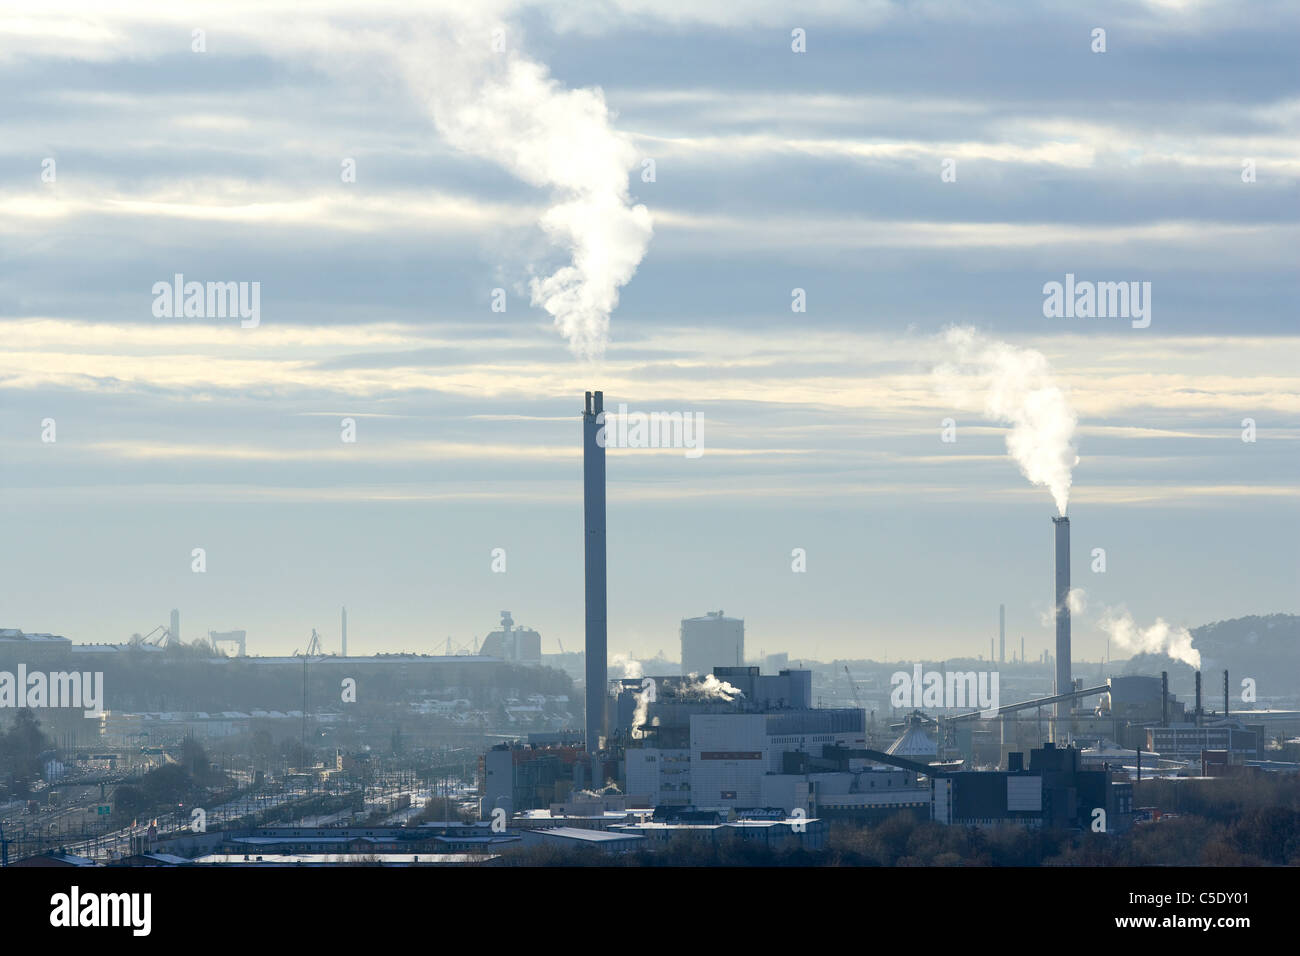 Chimneys emitting smoke at the industrial area against the sky Stock Photo